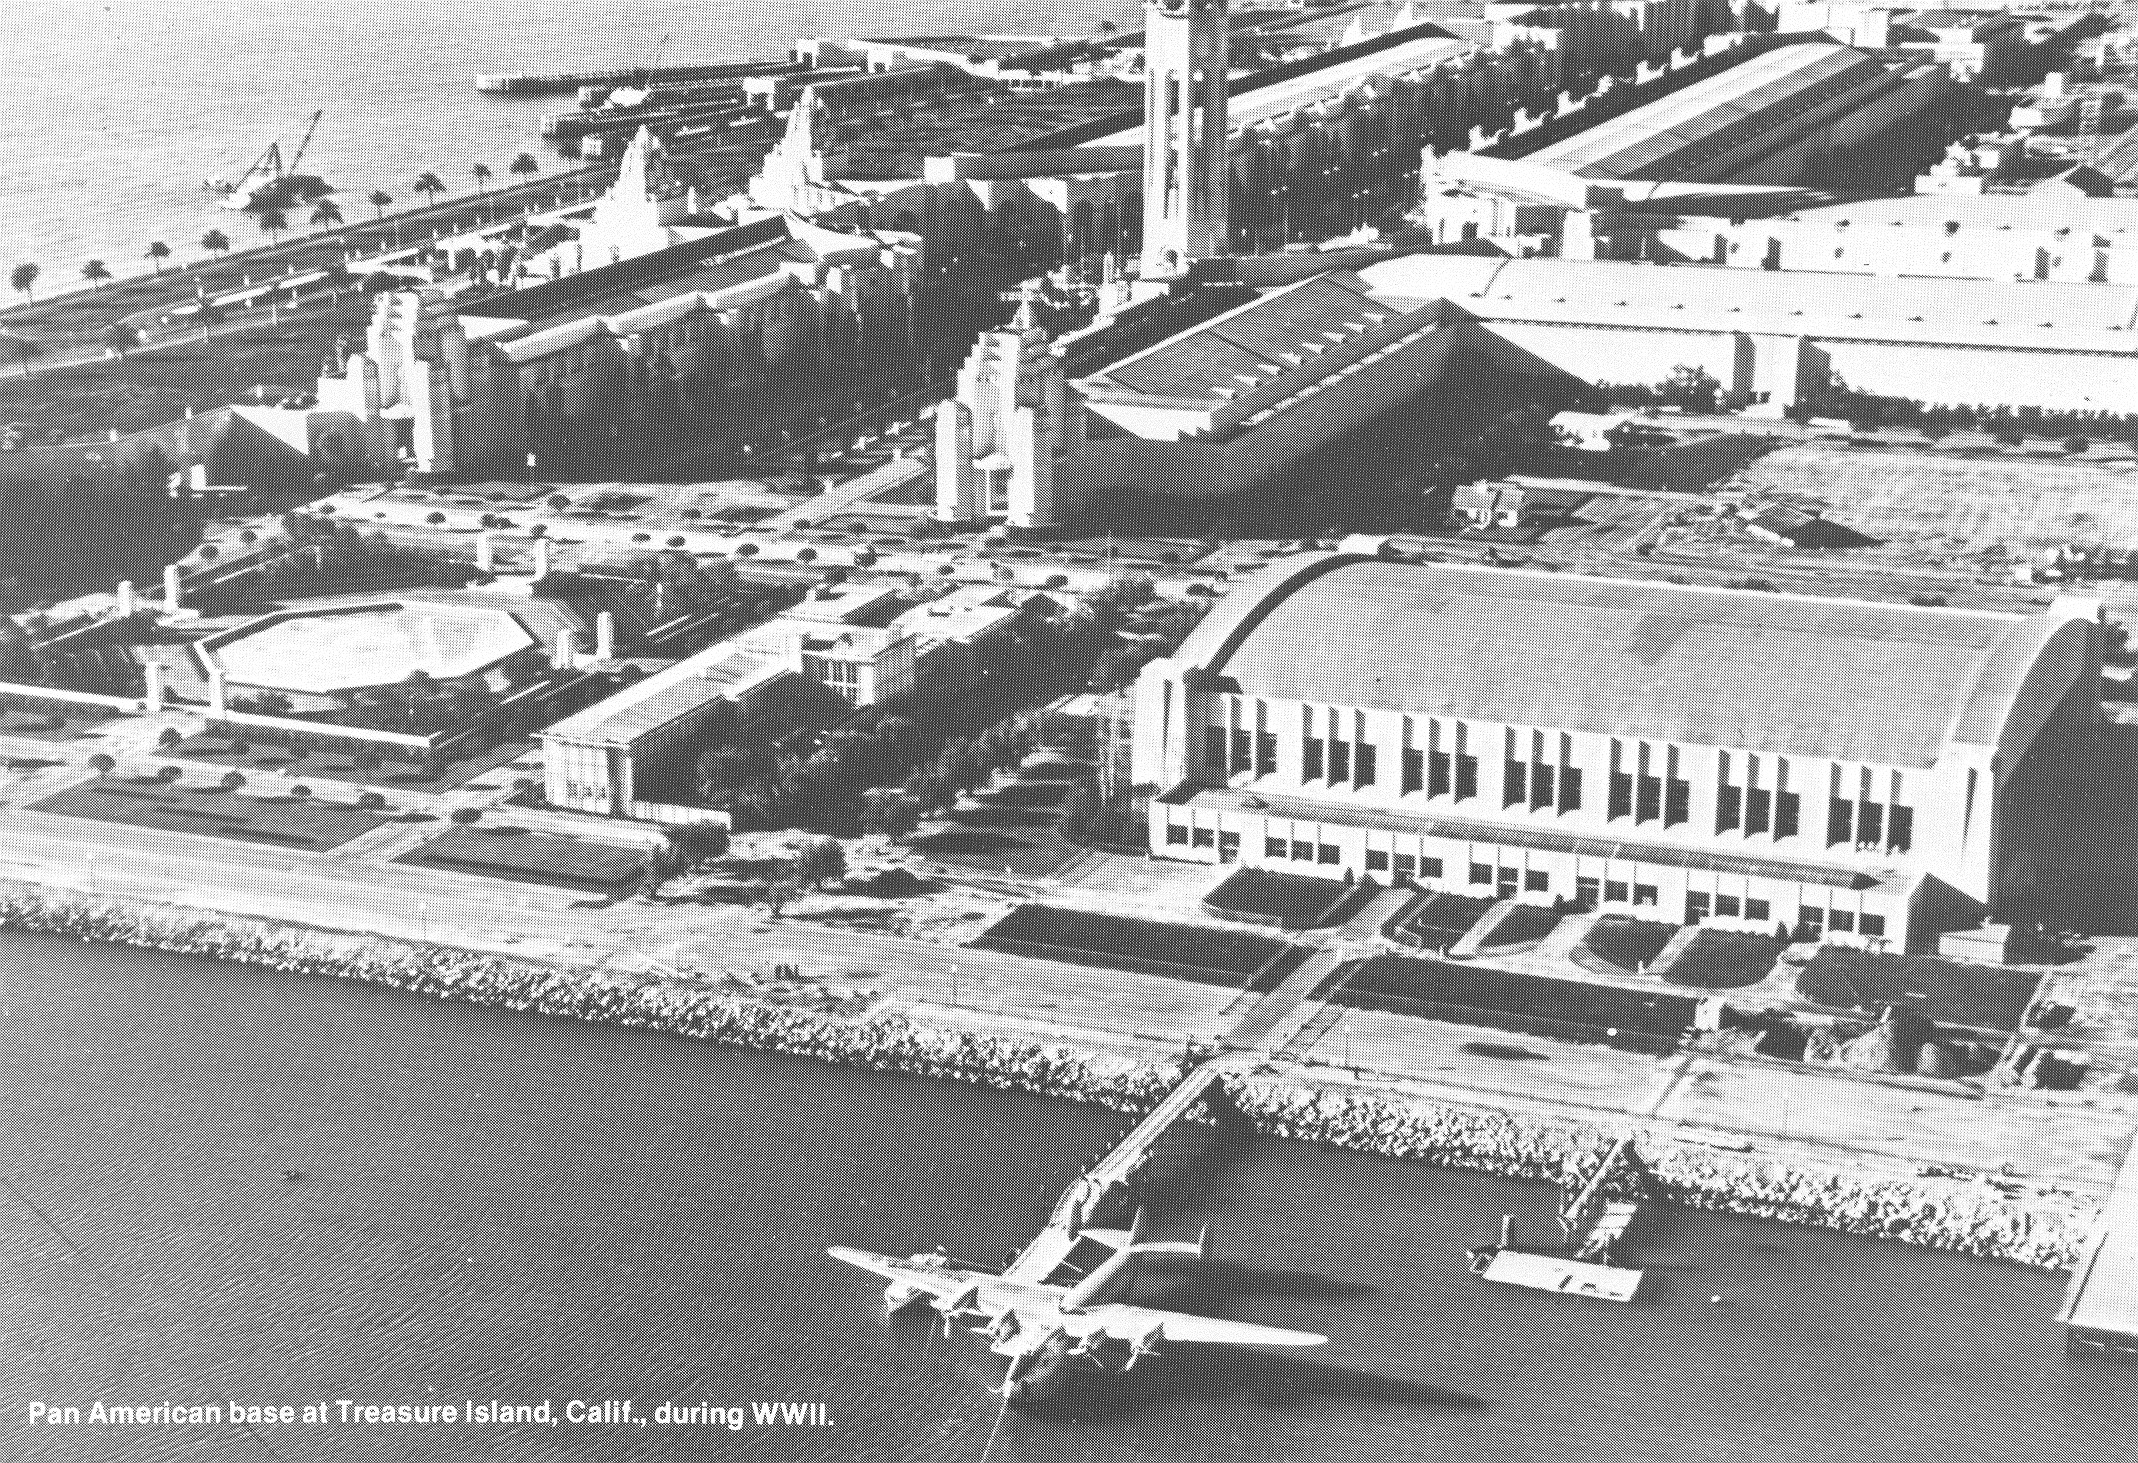 1940s Treasure Island base San Franciswco with Boeing B314 moored.  Treasure Island was one of 3 large flying boat bases along with the Marine Air Terminal in New York and Dinner Key in Miami.